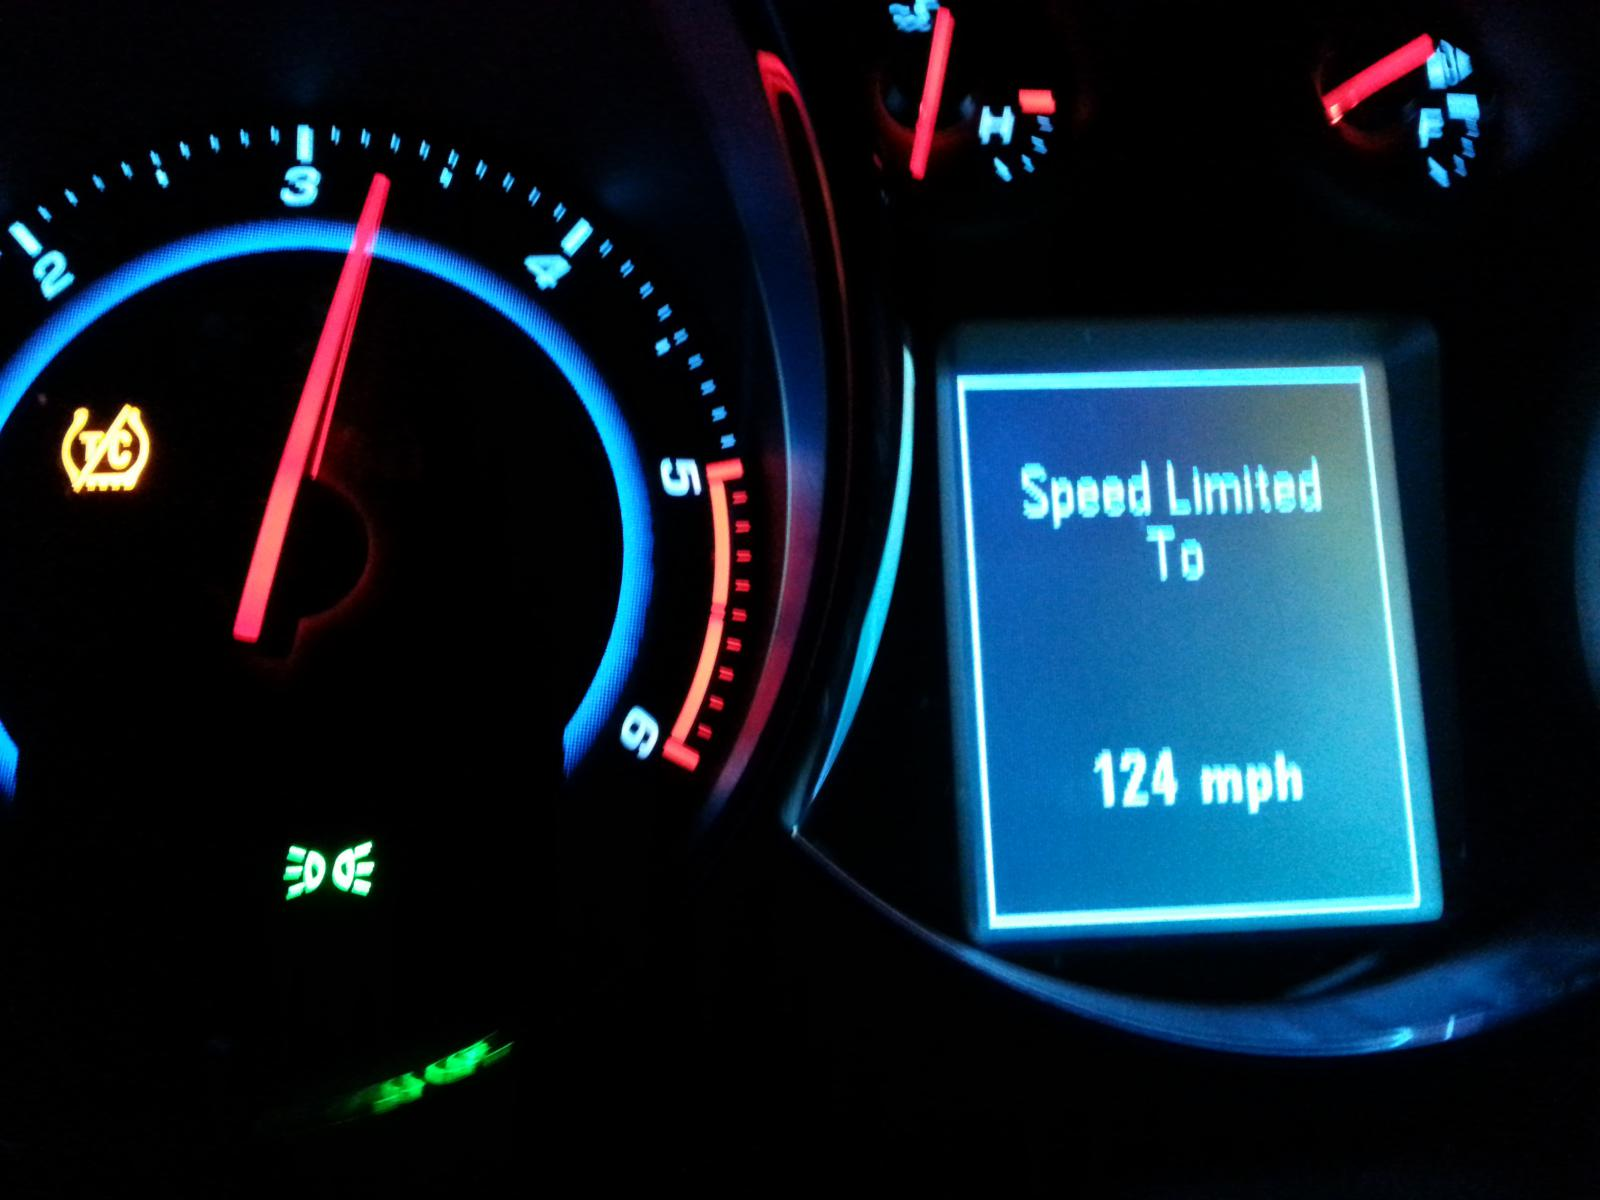 Cruze Diesel Top Speed?